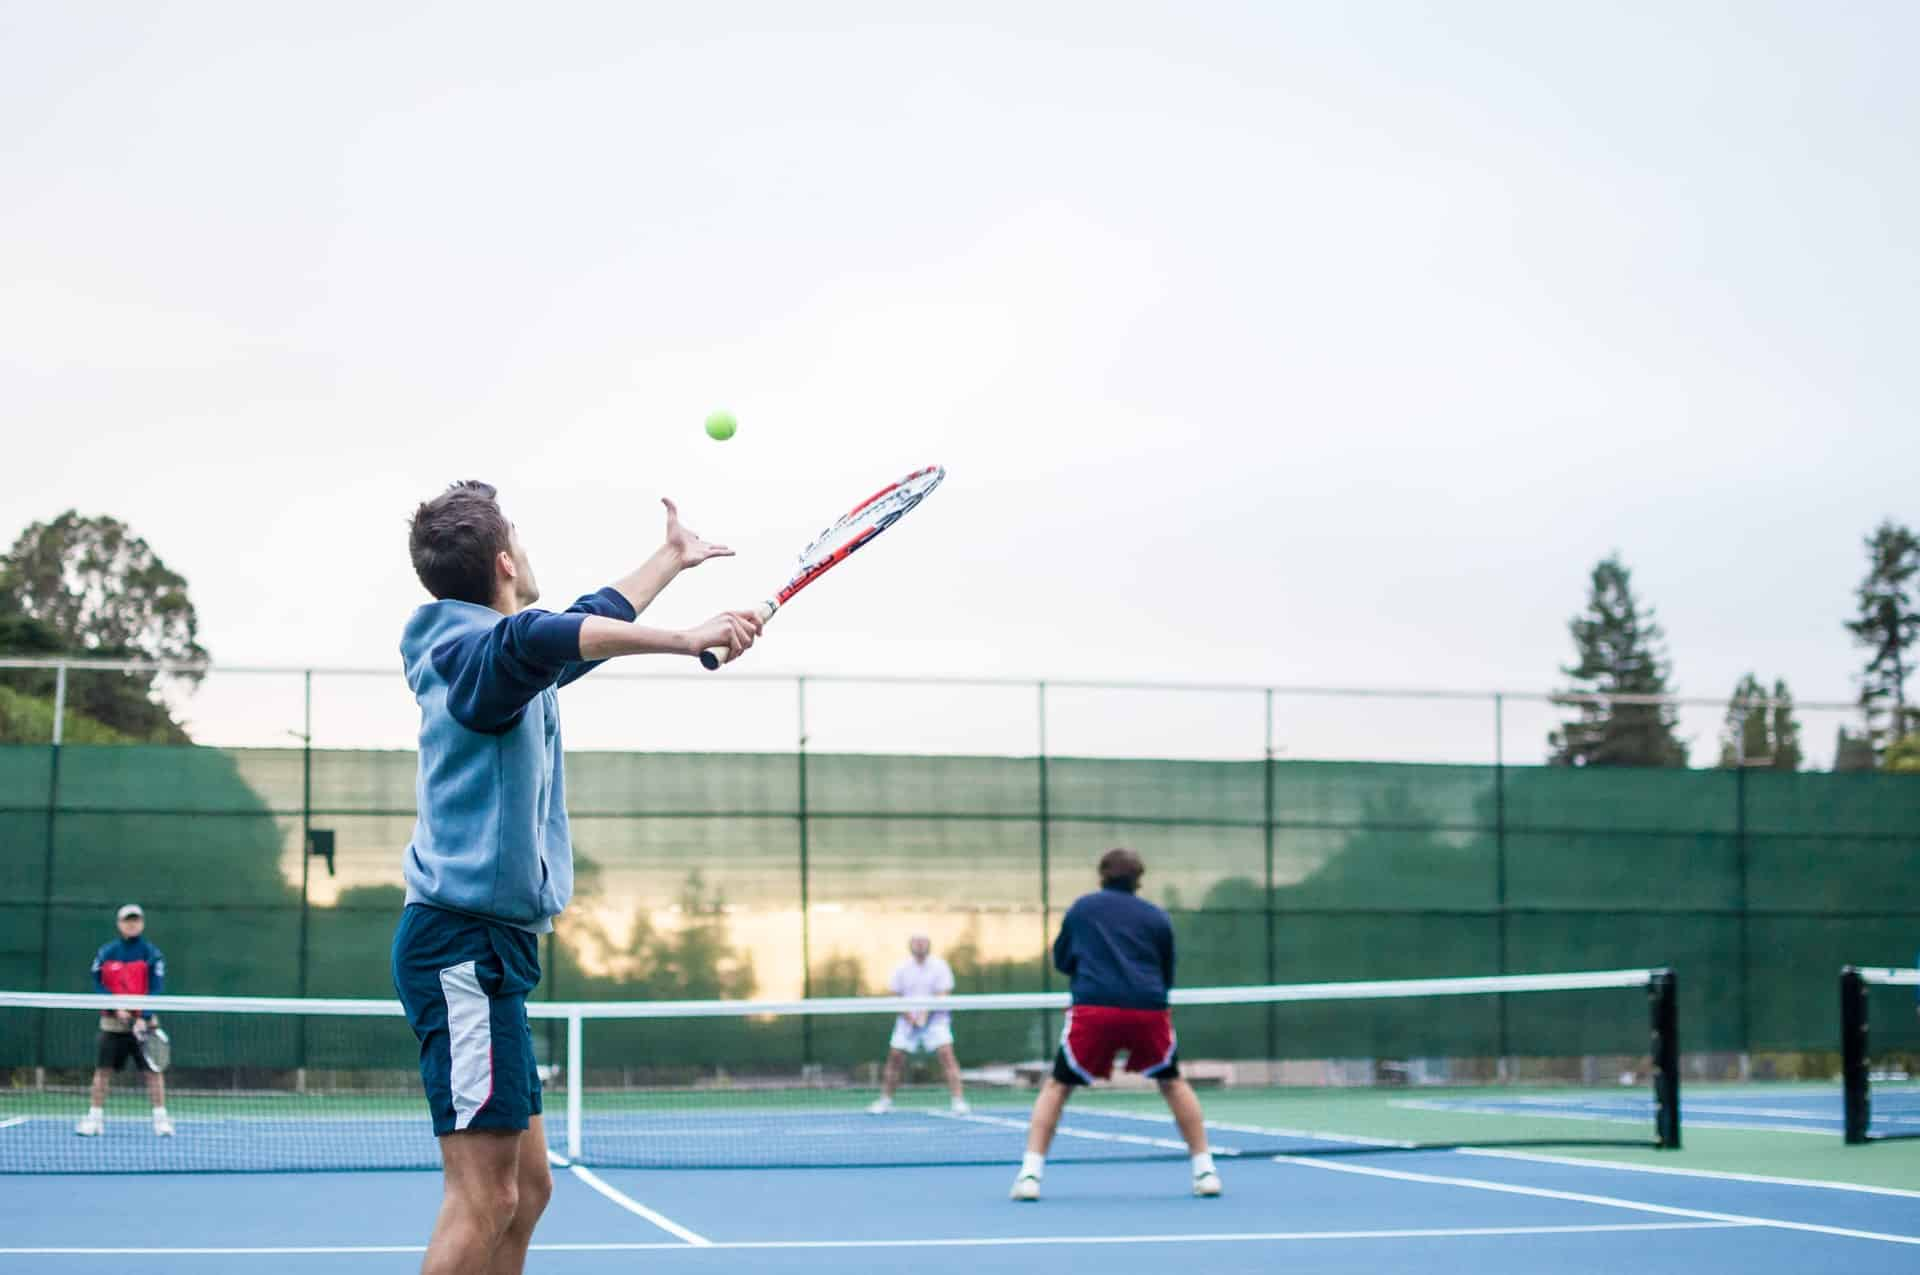 Few Easy Tips You Need To Know About Tennis Game